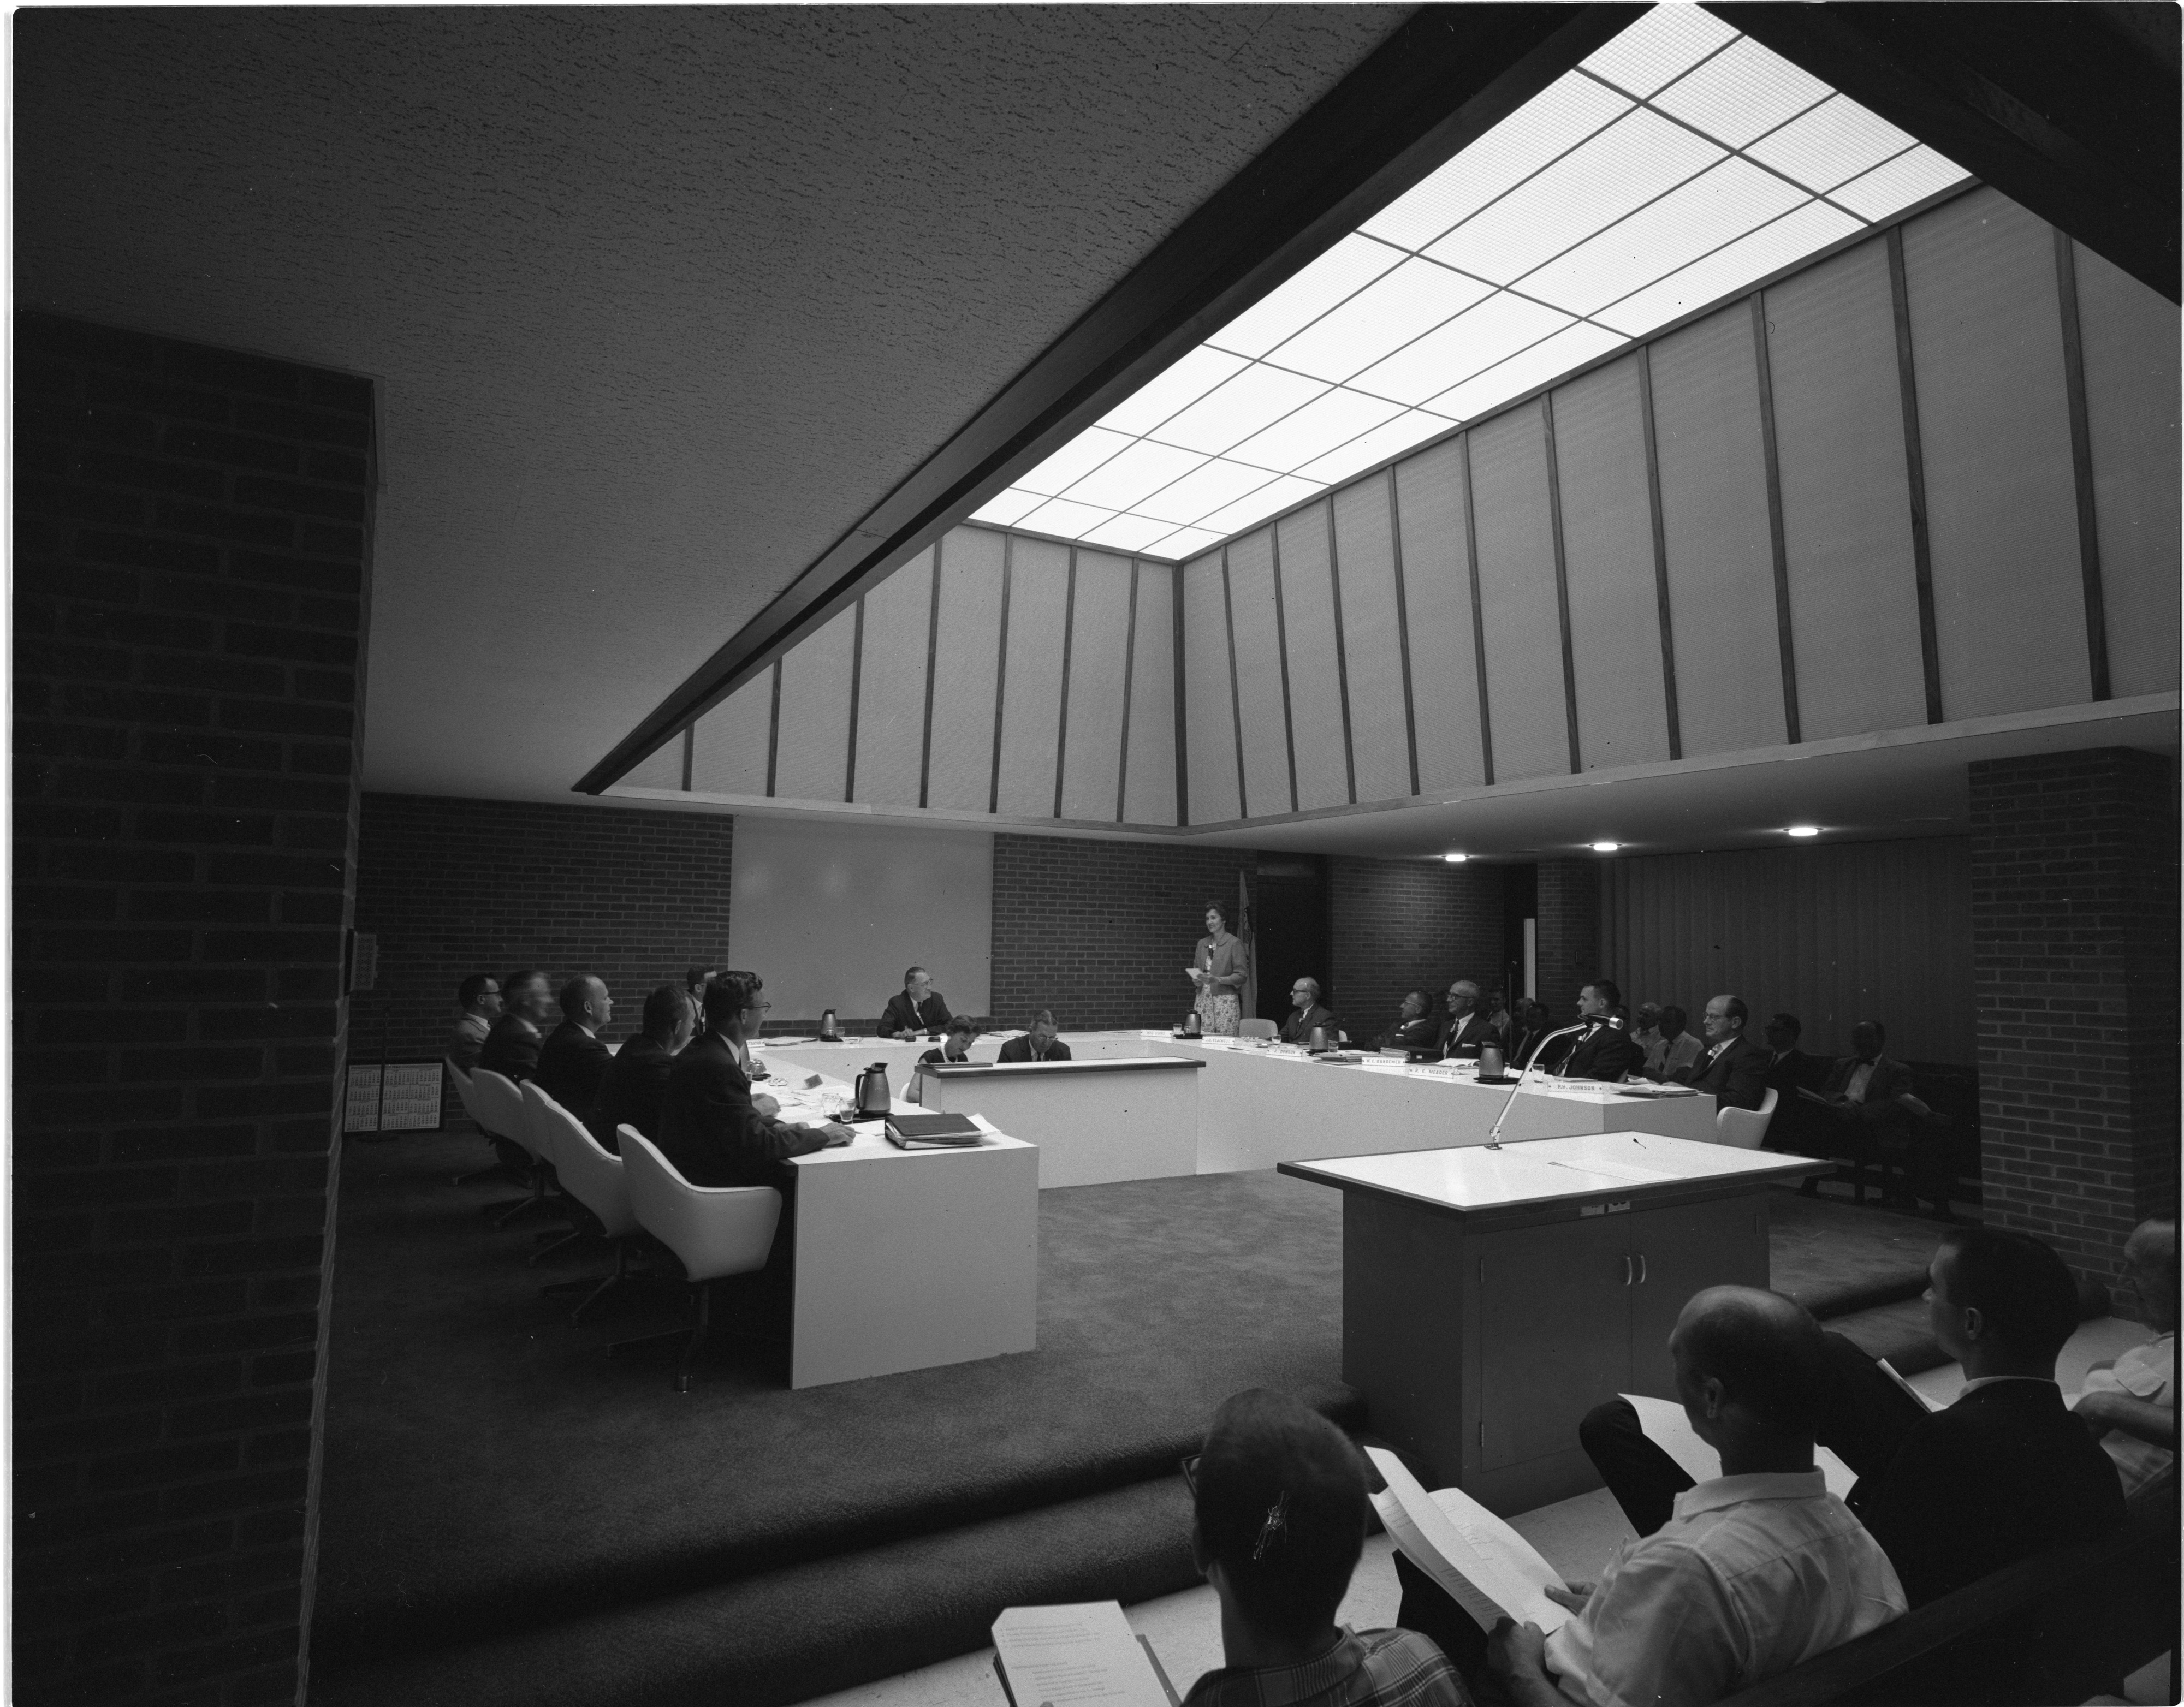 Ann Arbor City Council In Session, July 1963 image